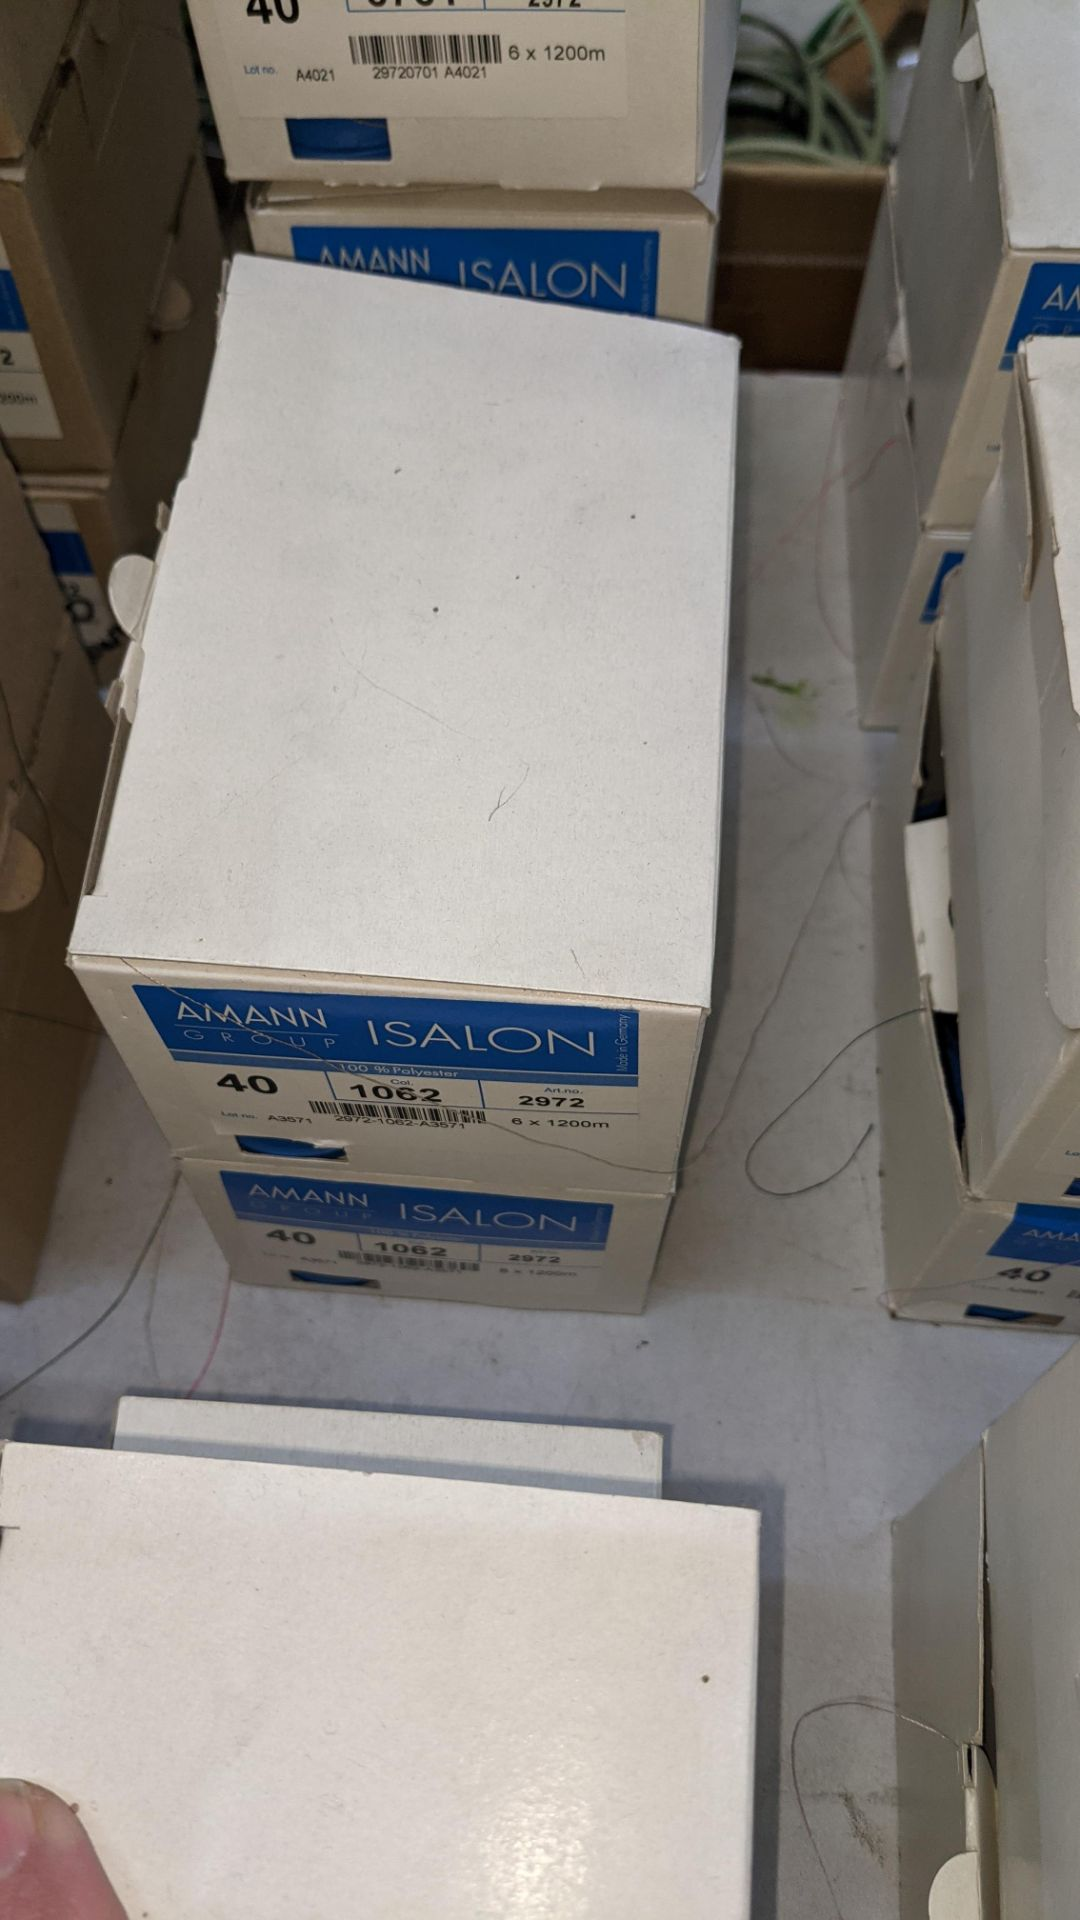 13 boxes of Amann Group ISALON 40 polyester embroidery thread - Image 7 of 10